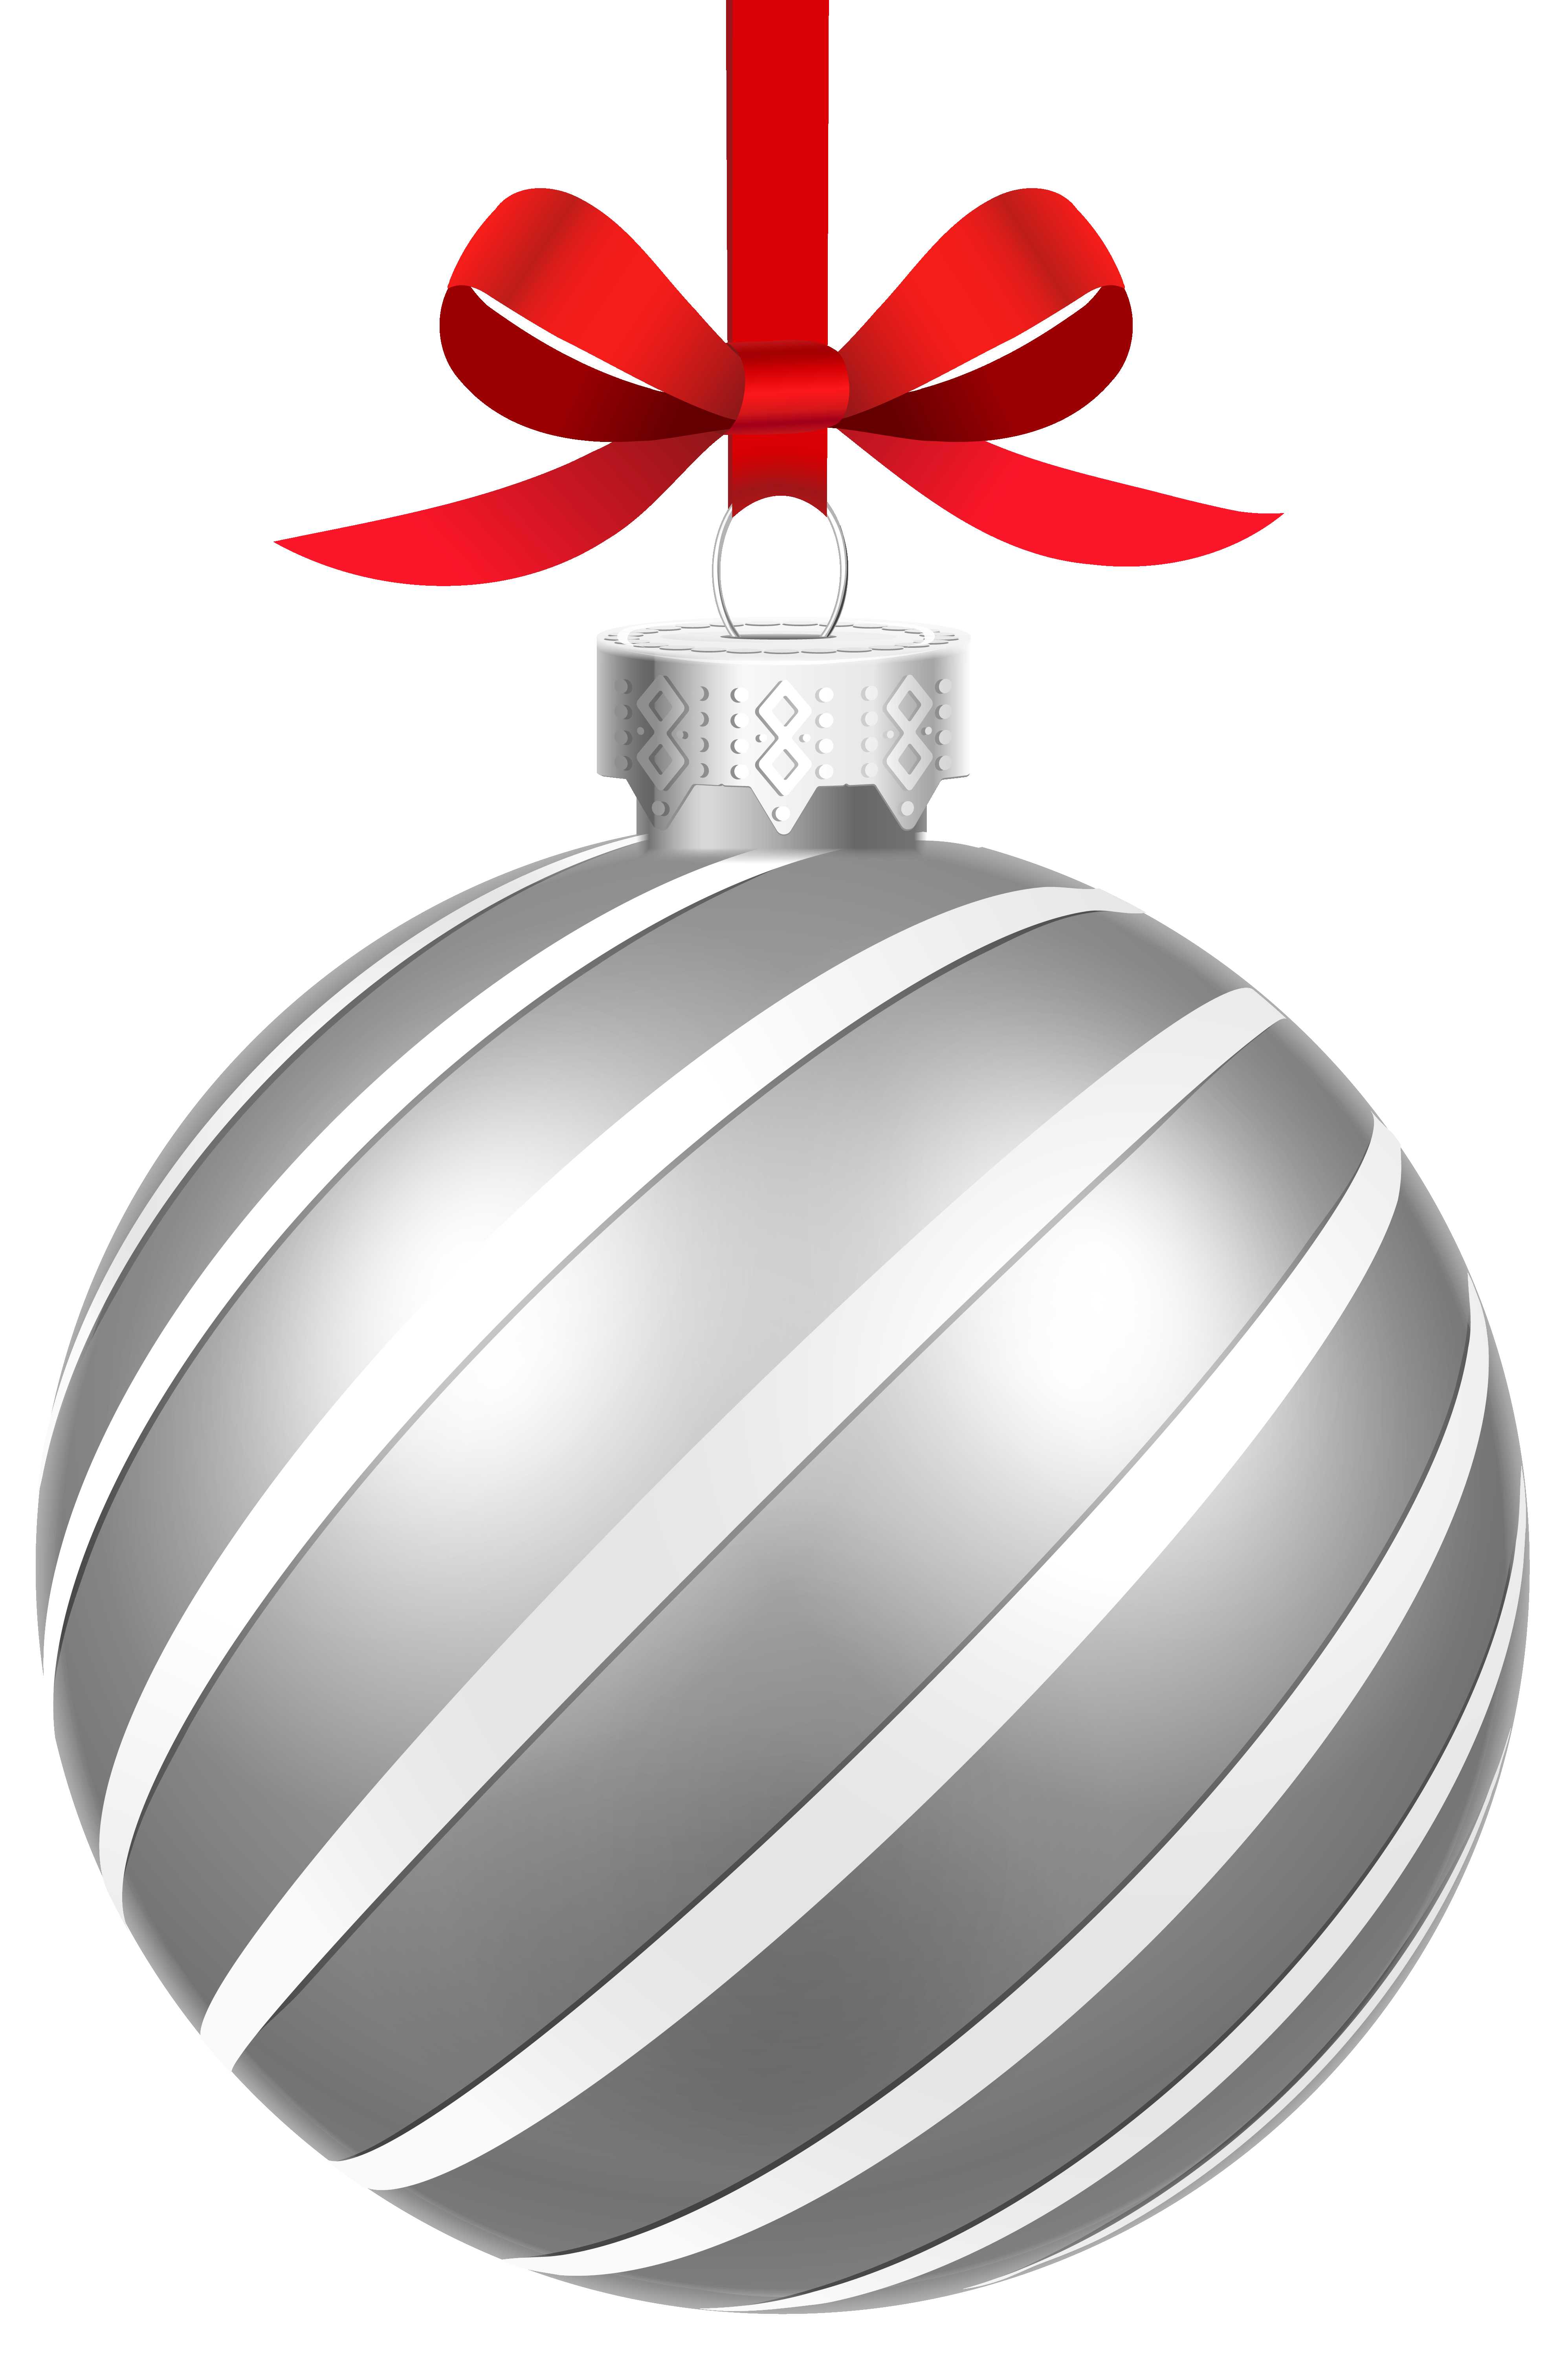 Clipart bow silver. Striped christmas ball png